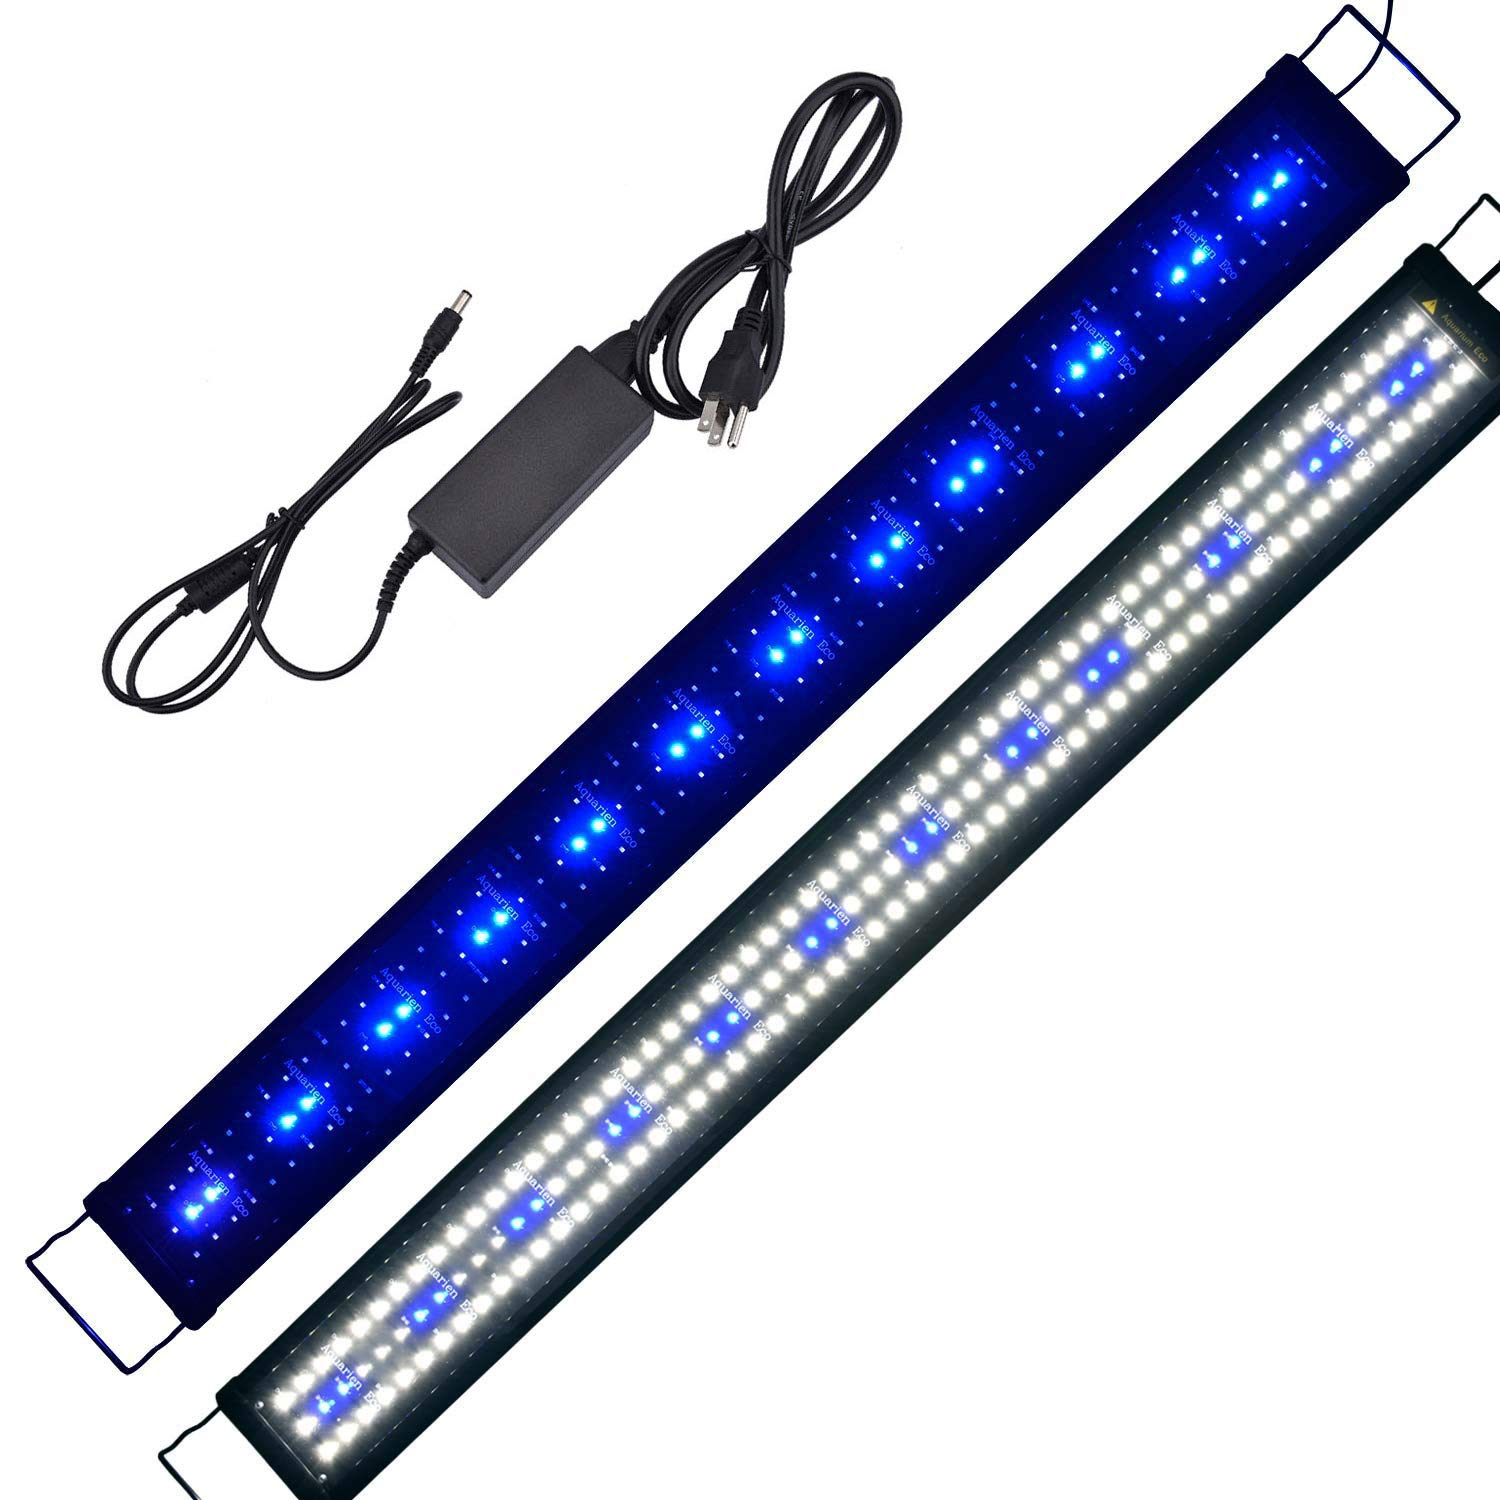 Zeiger Eco LED Aquarium Light 5-6 Feet 150cm-170cm Tank Saltwater and Freshwater LED Tank 60 inch - 72 inch lamp 36W A116